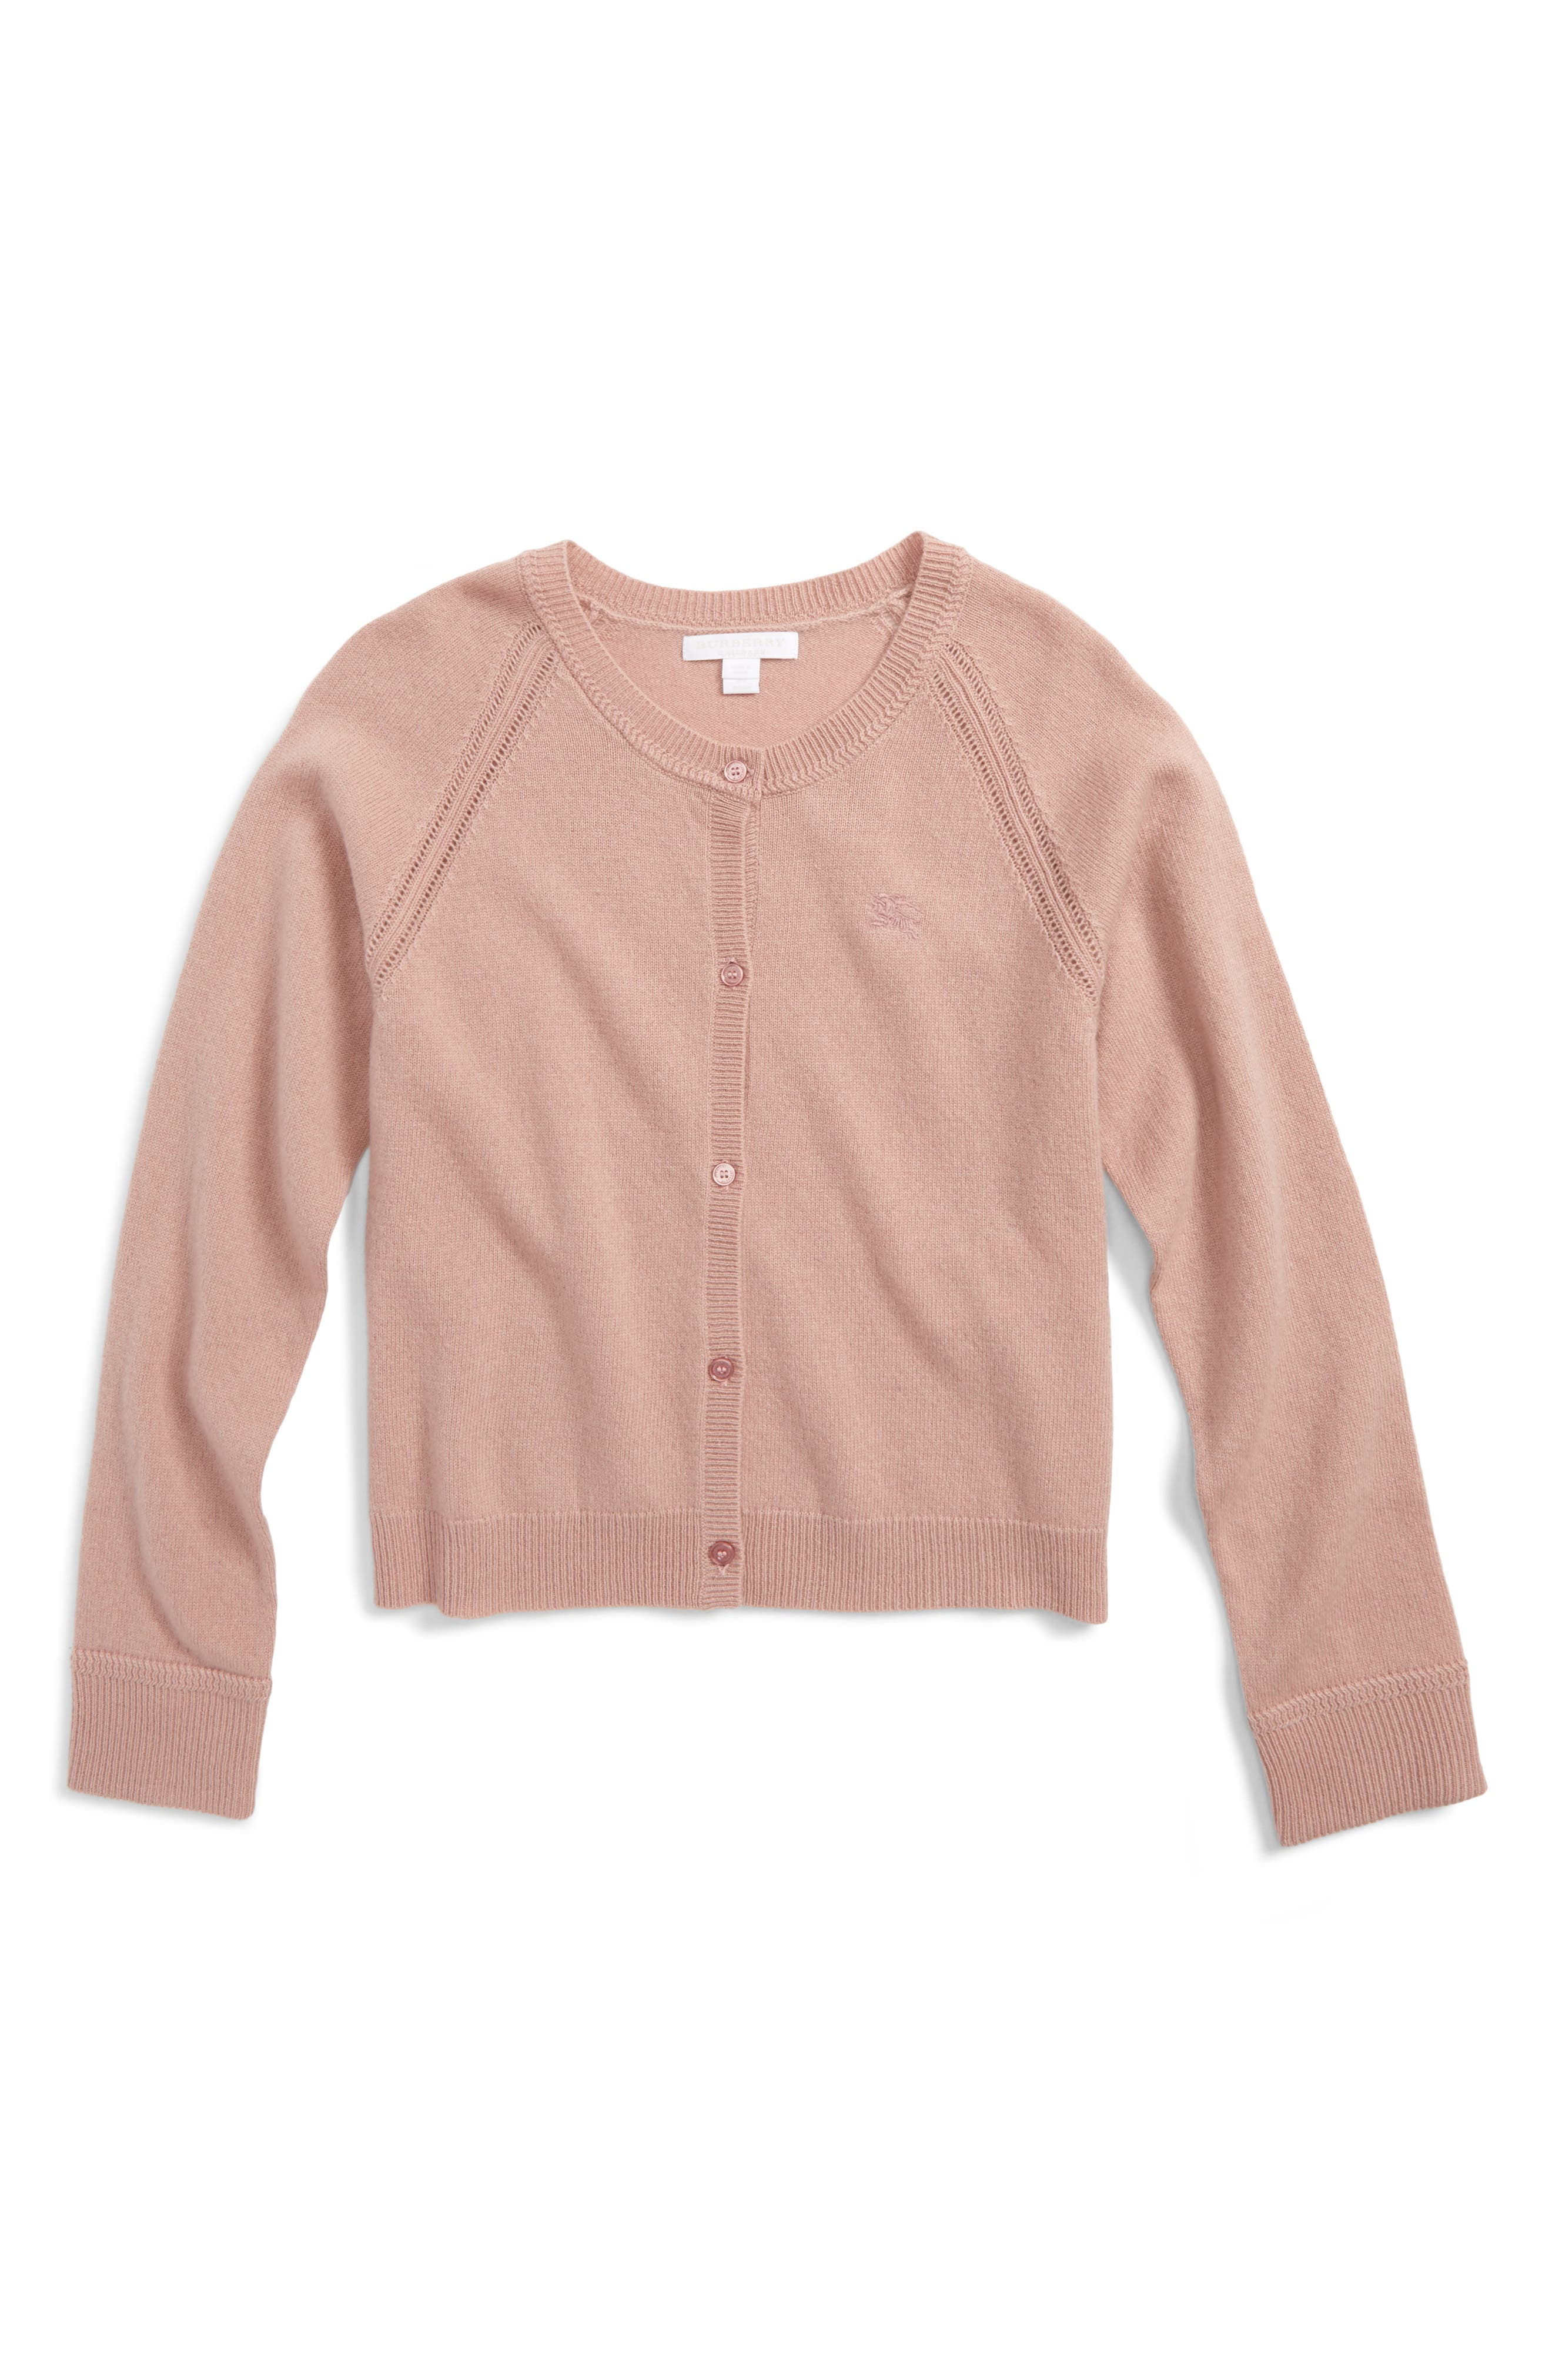 Gema Cashmere Cardigan,                             Main thumbnail 1, color,                             Dusty Pink